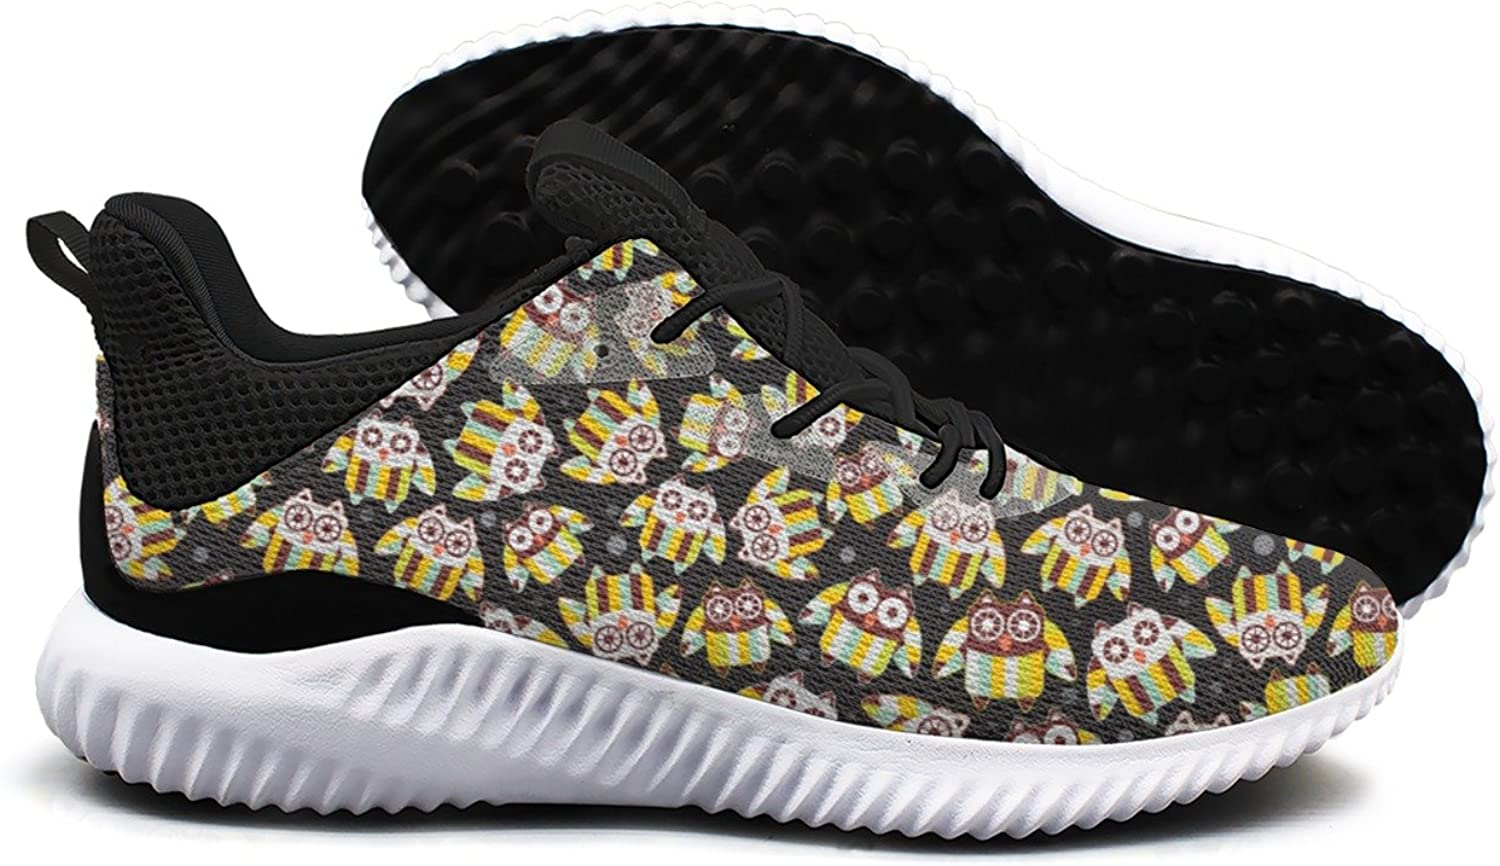 Cute Owl Party Favors Leisure Design Running shoes Young Women Top Hunting Gift